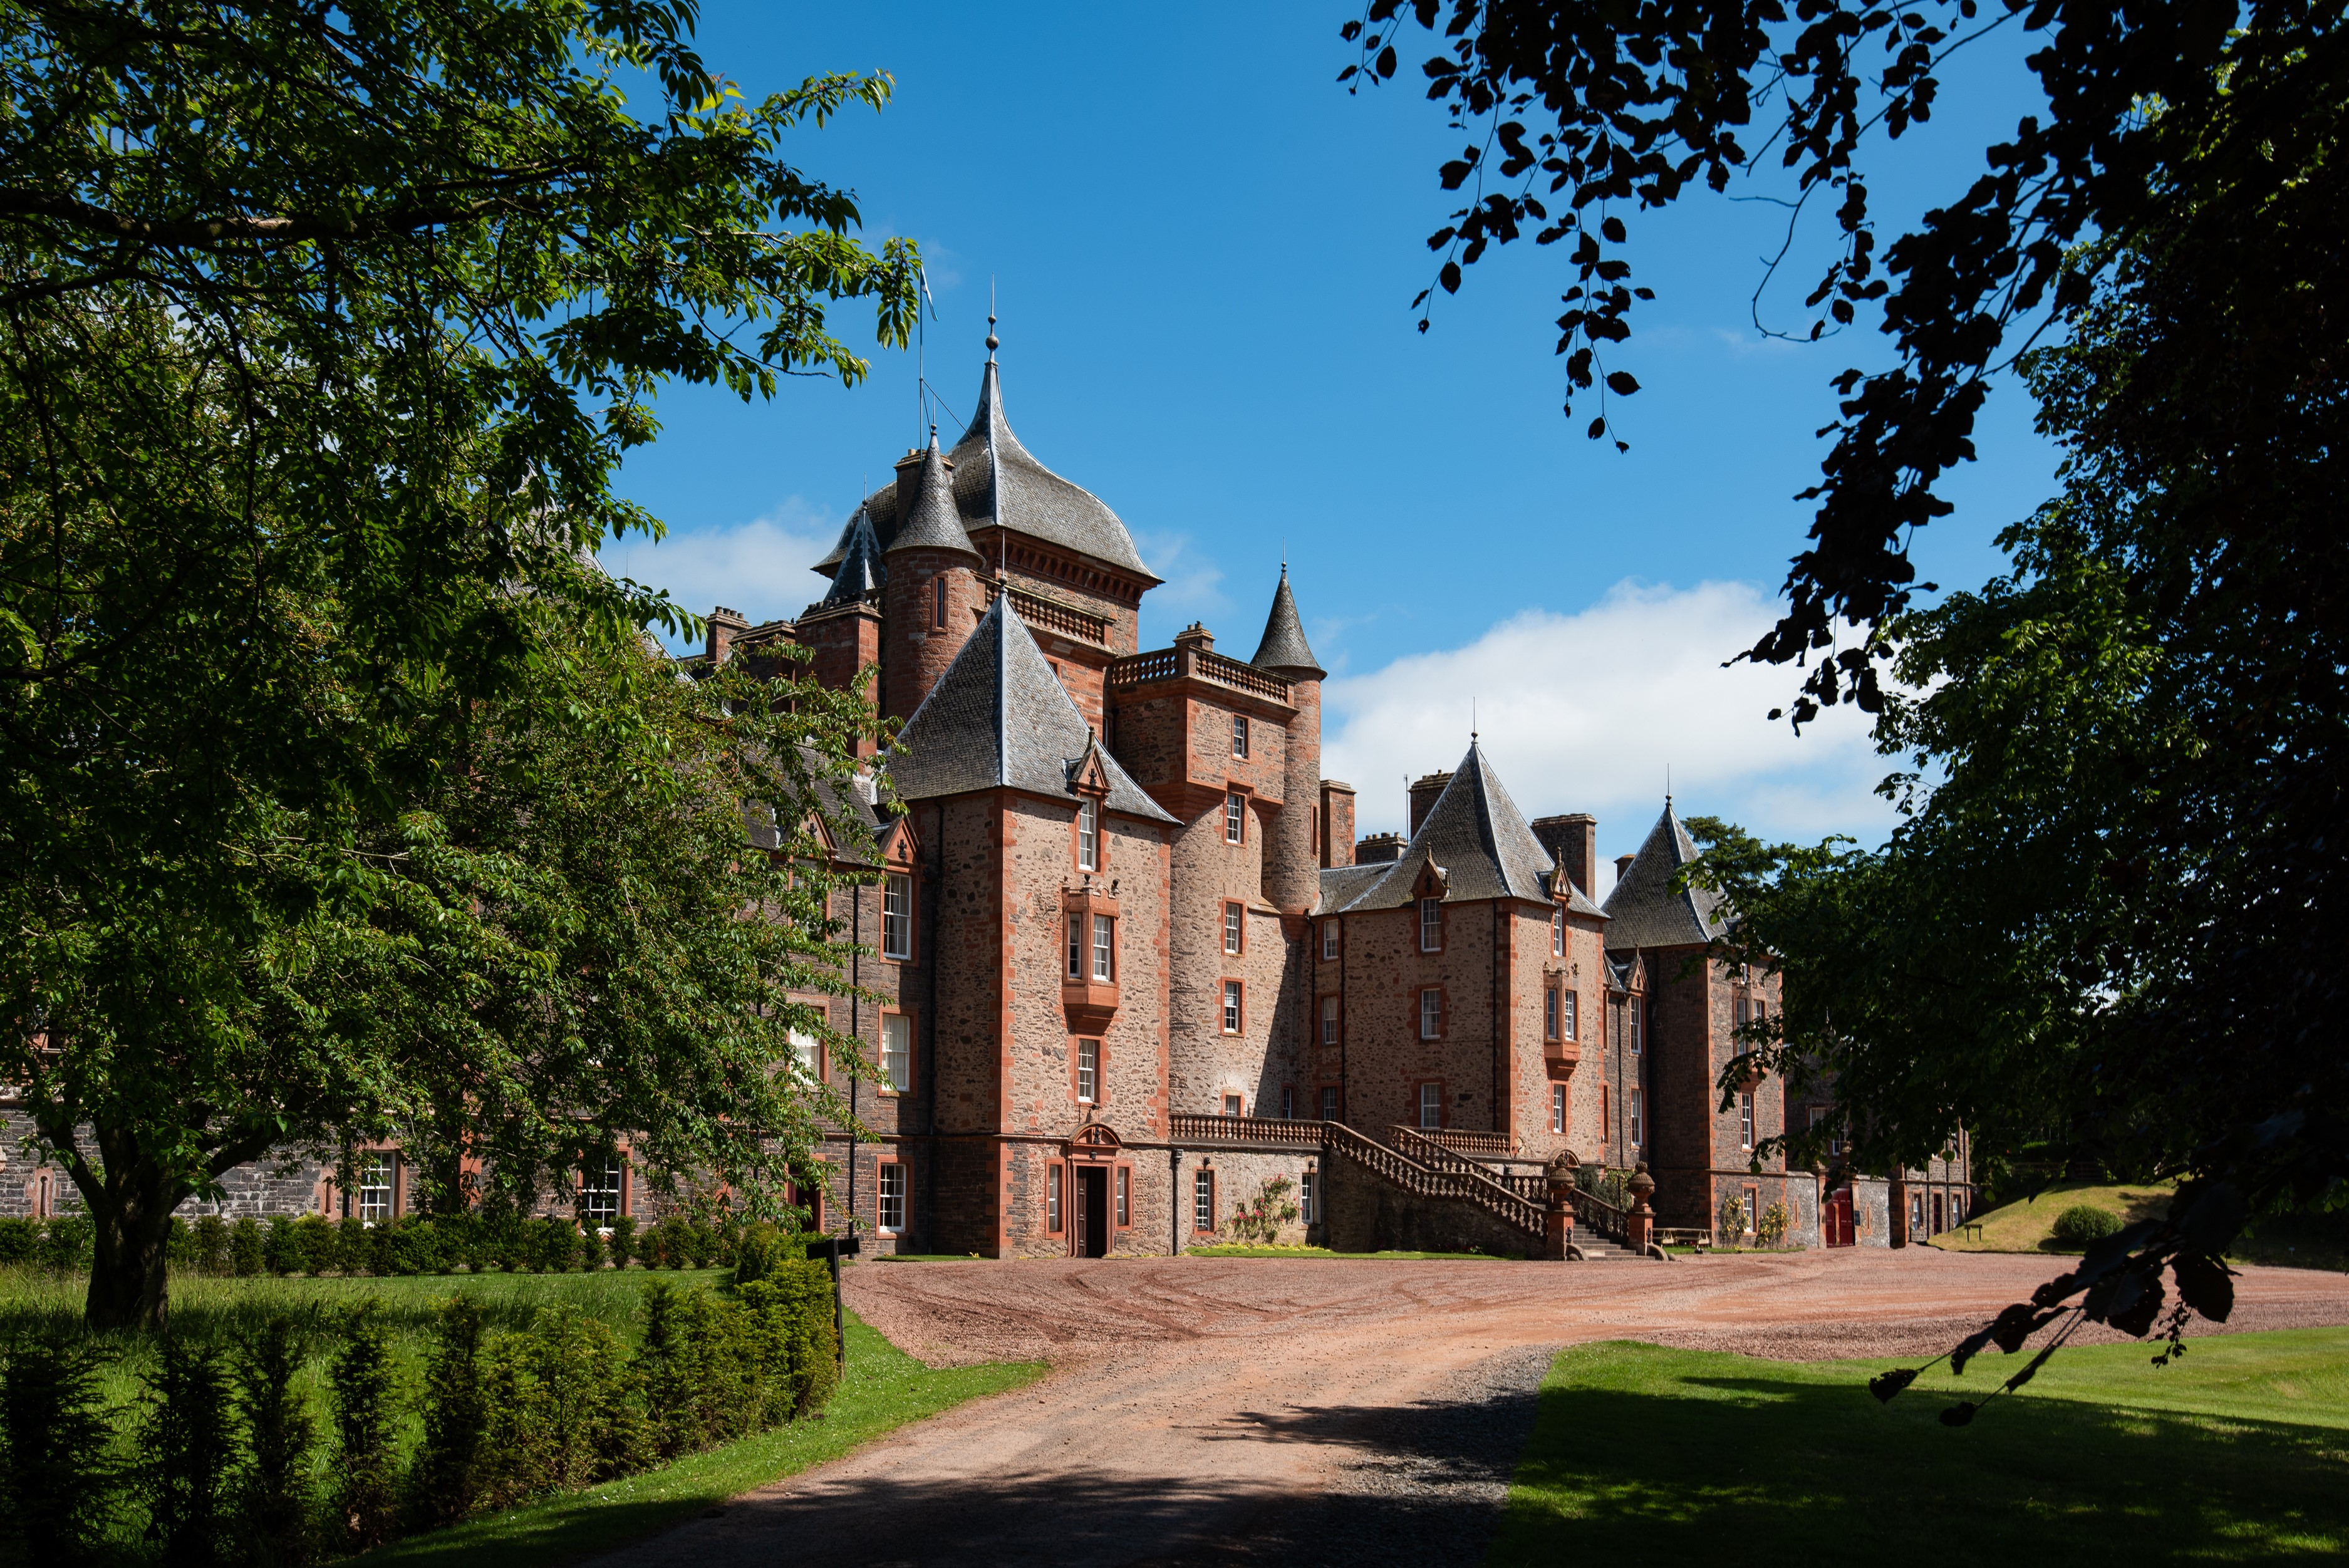 South Wing, Thirlestane Castle